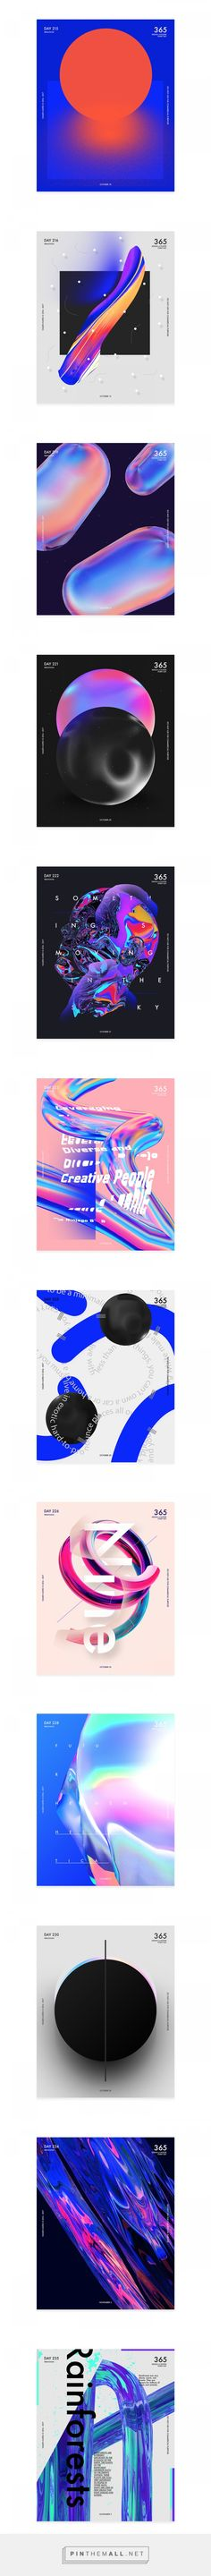 Baugasm Series - Pack 3 https://www.behance.net/gallery/45112219/Baugasm-Series-Pack-3... - a grouped images picture - Pin Them All